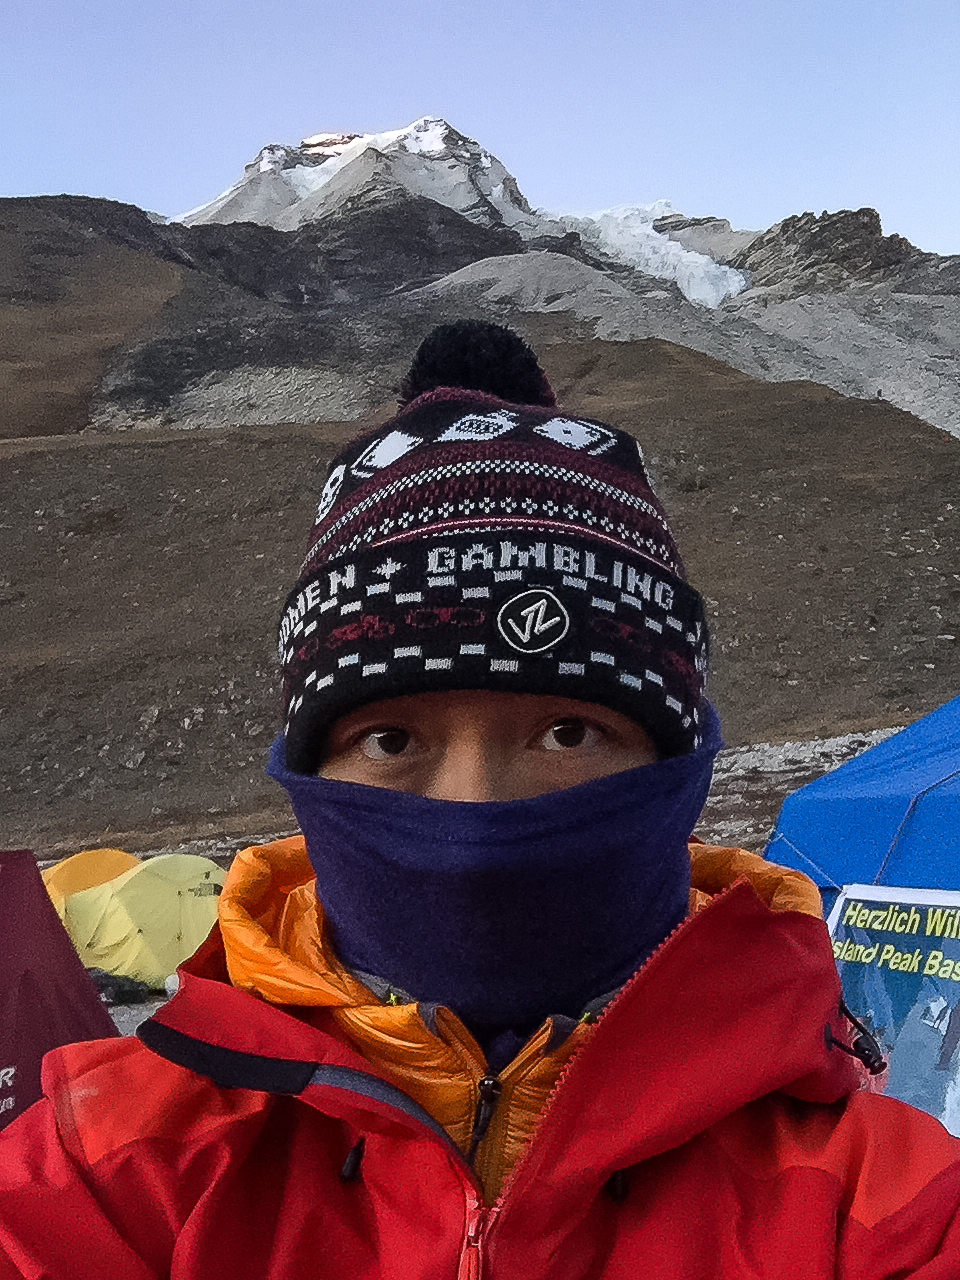 Selfie with Island Peak